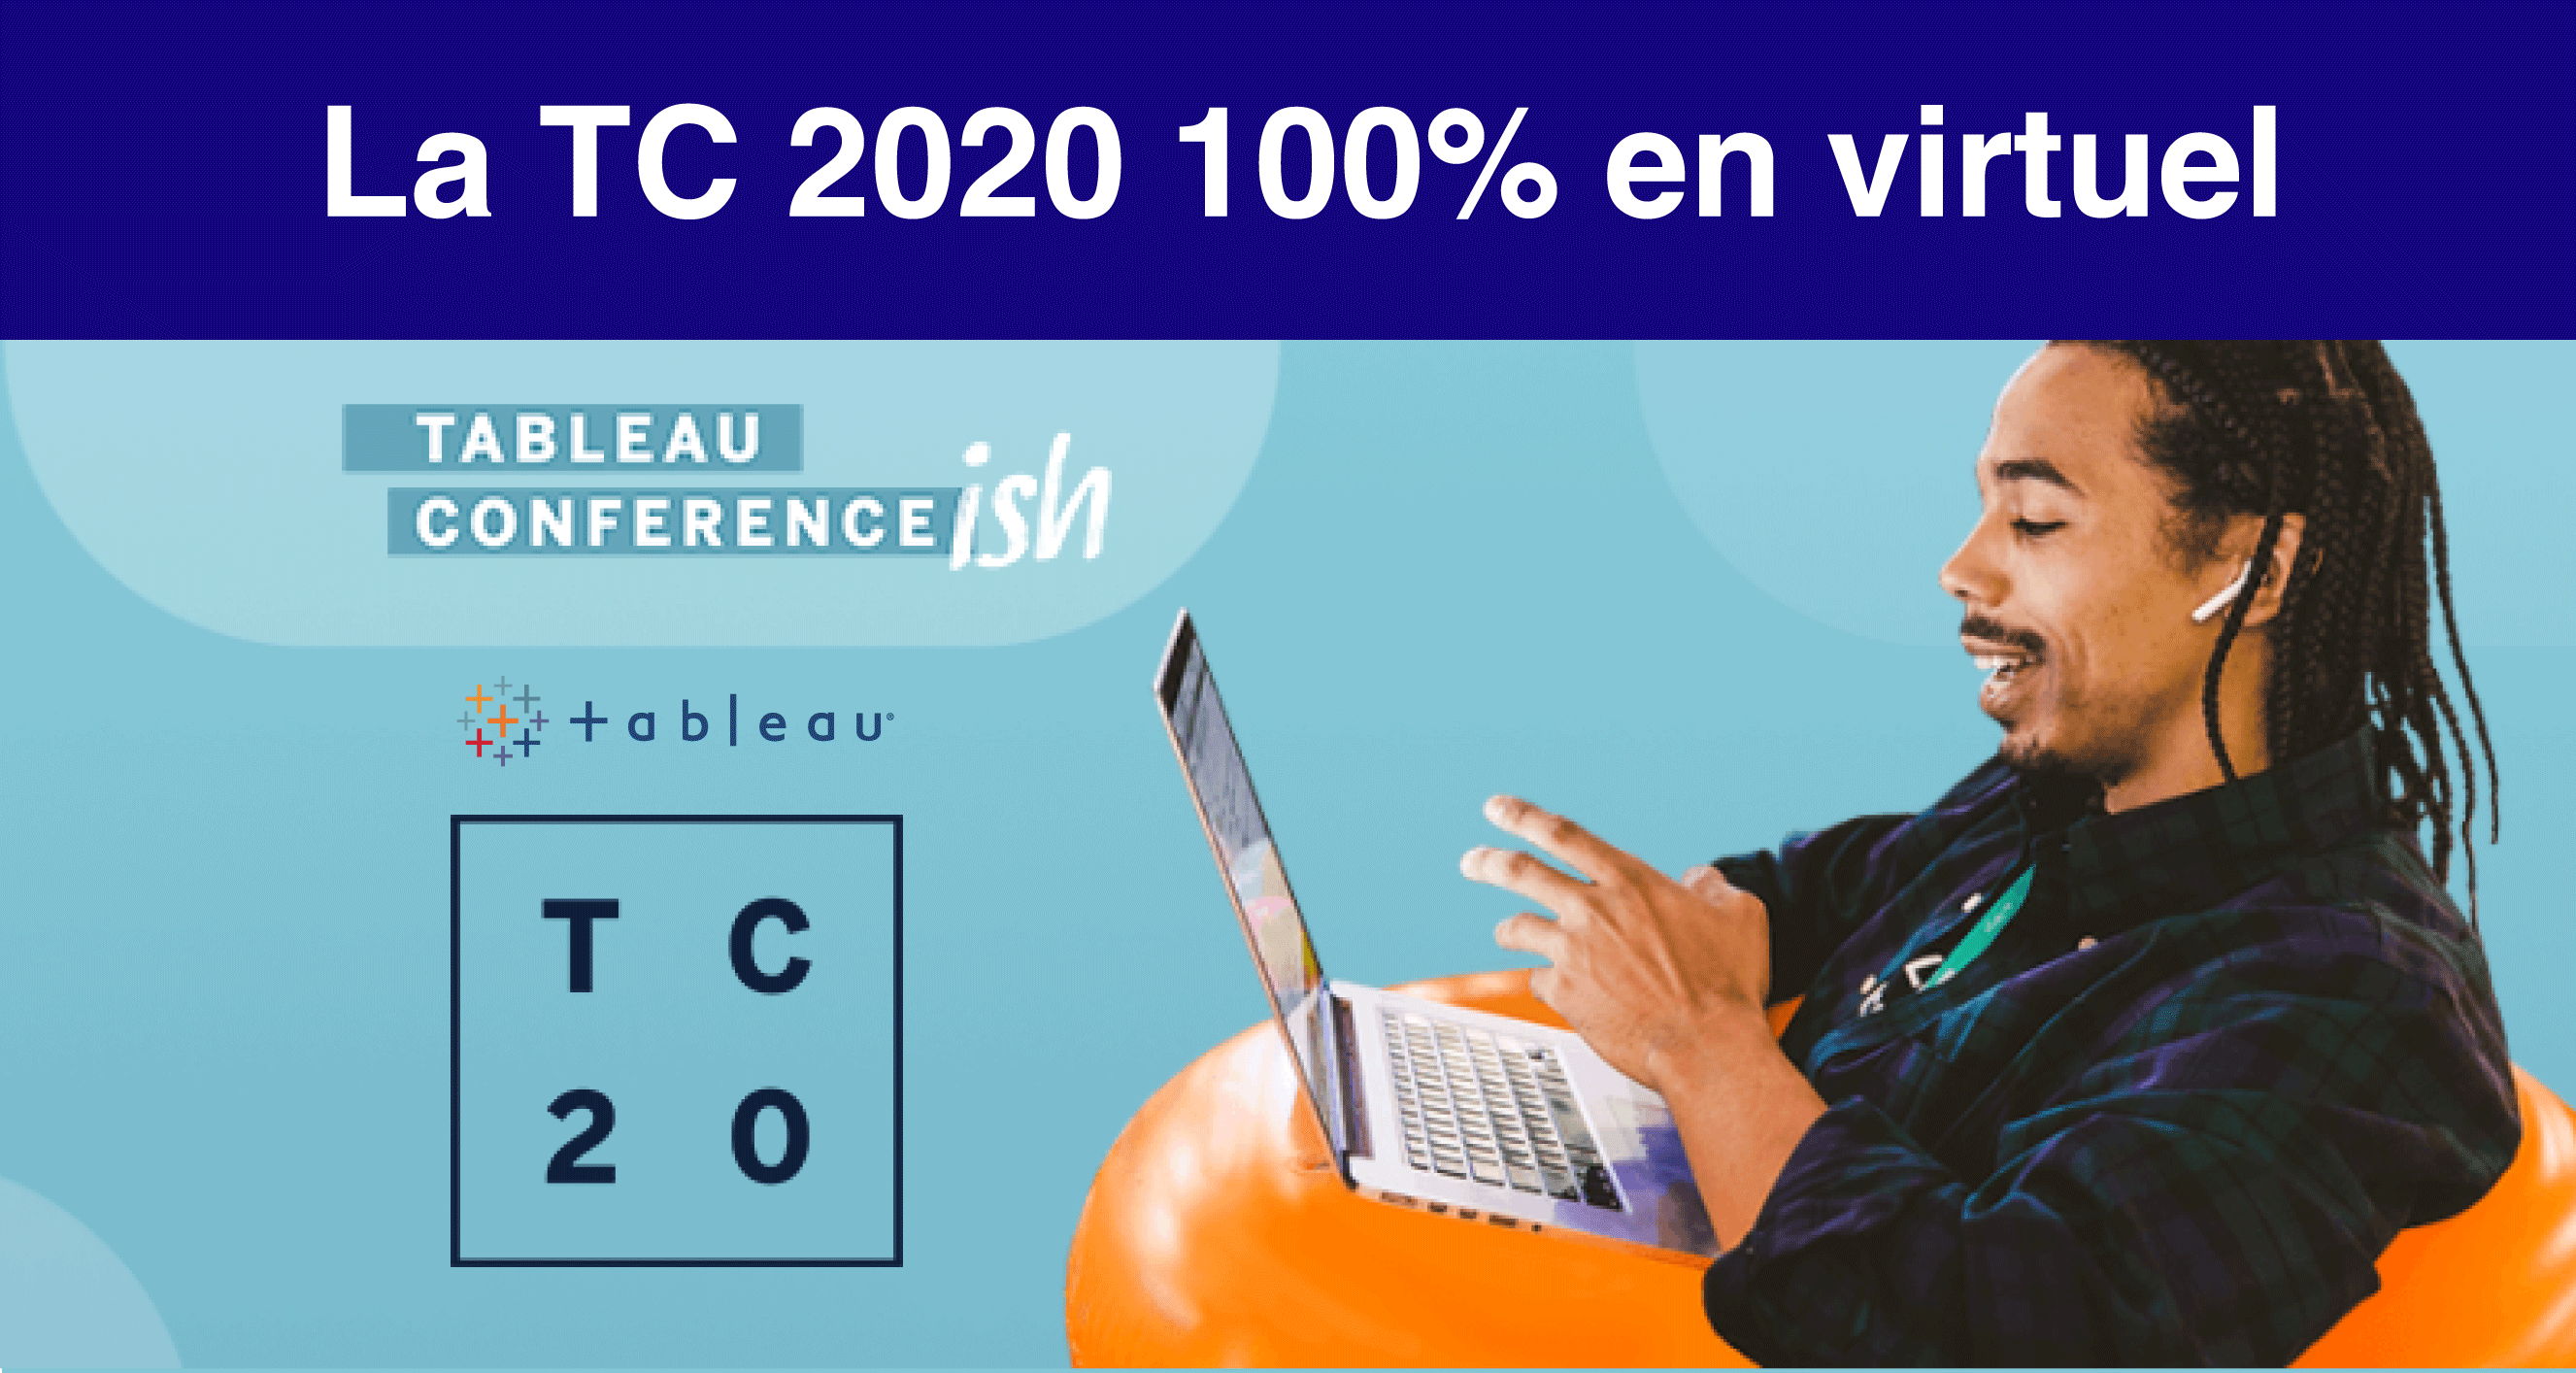 Tableau conference 2020